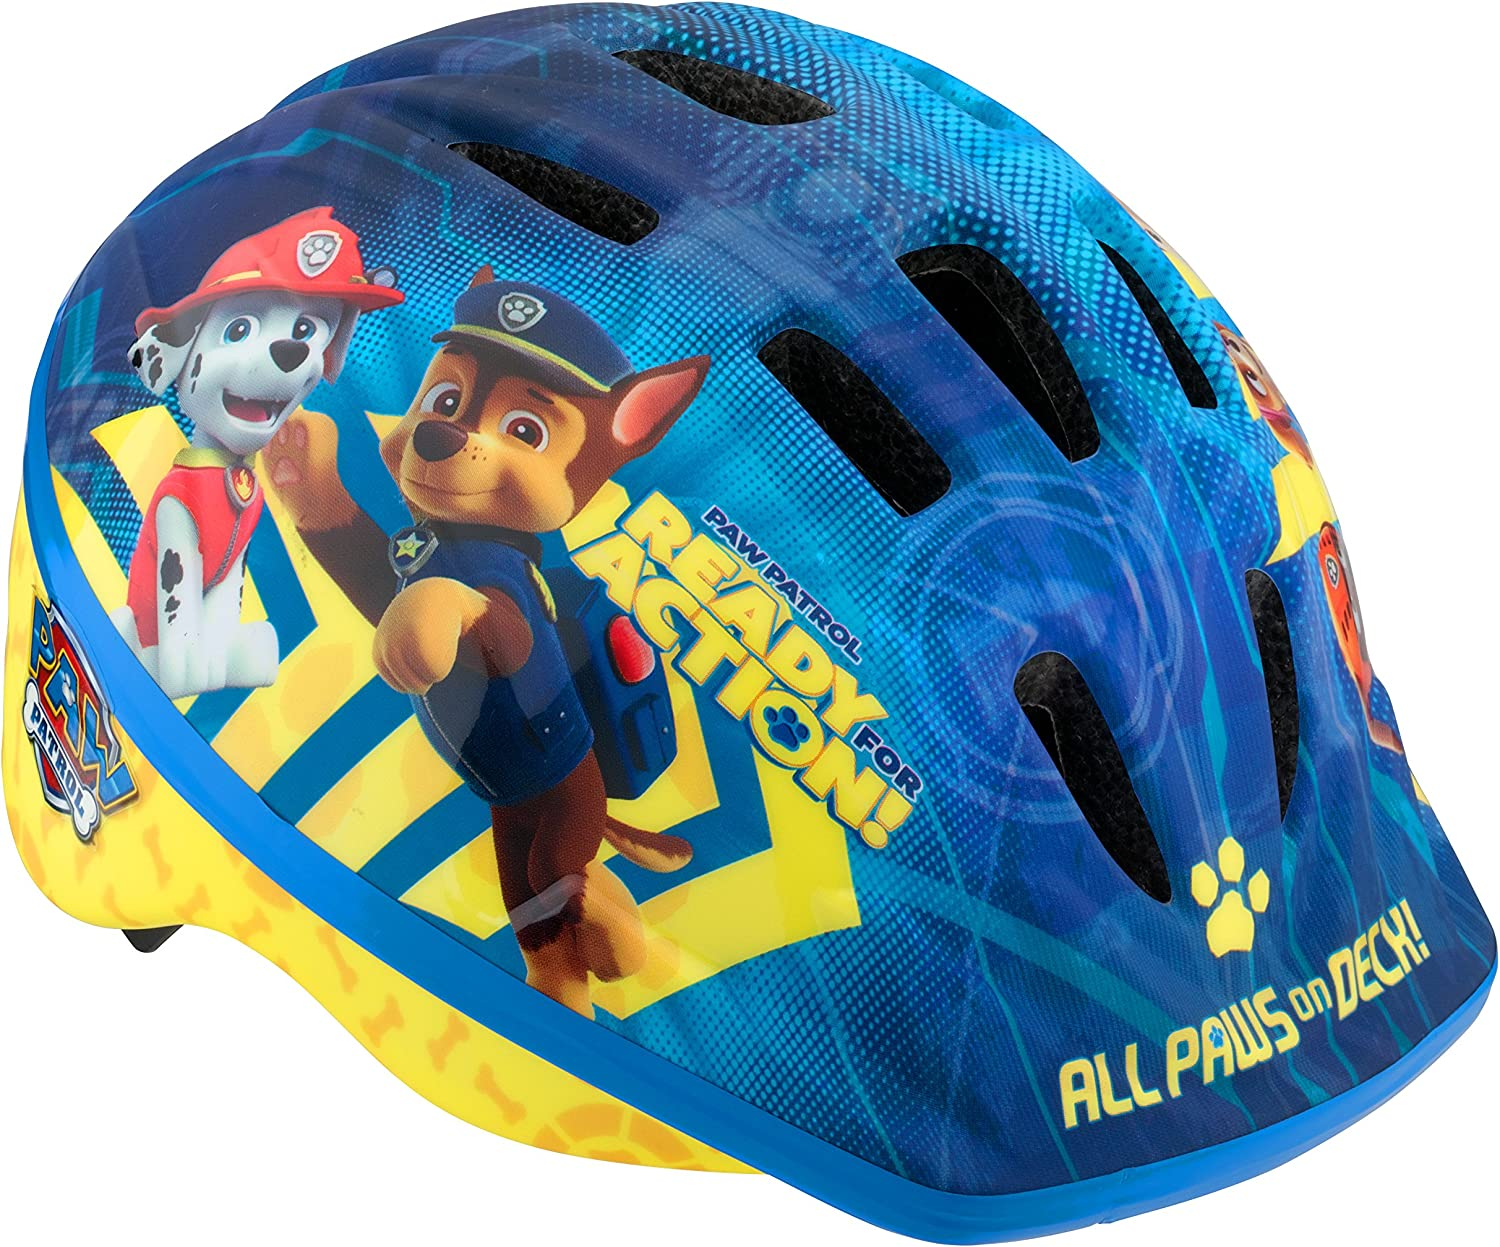 Licensed Paw Patrol Toddler and Kids Bike Helmet, Toddler, All Paws, All Paws Blue (PP78801AZ-6): Sports & Outdoors